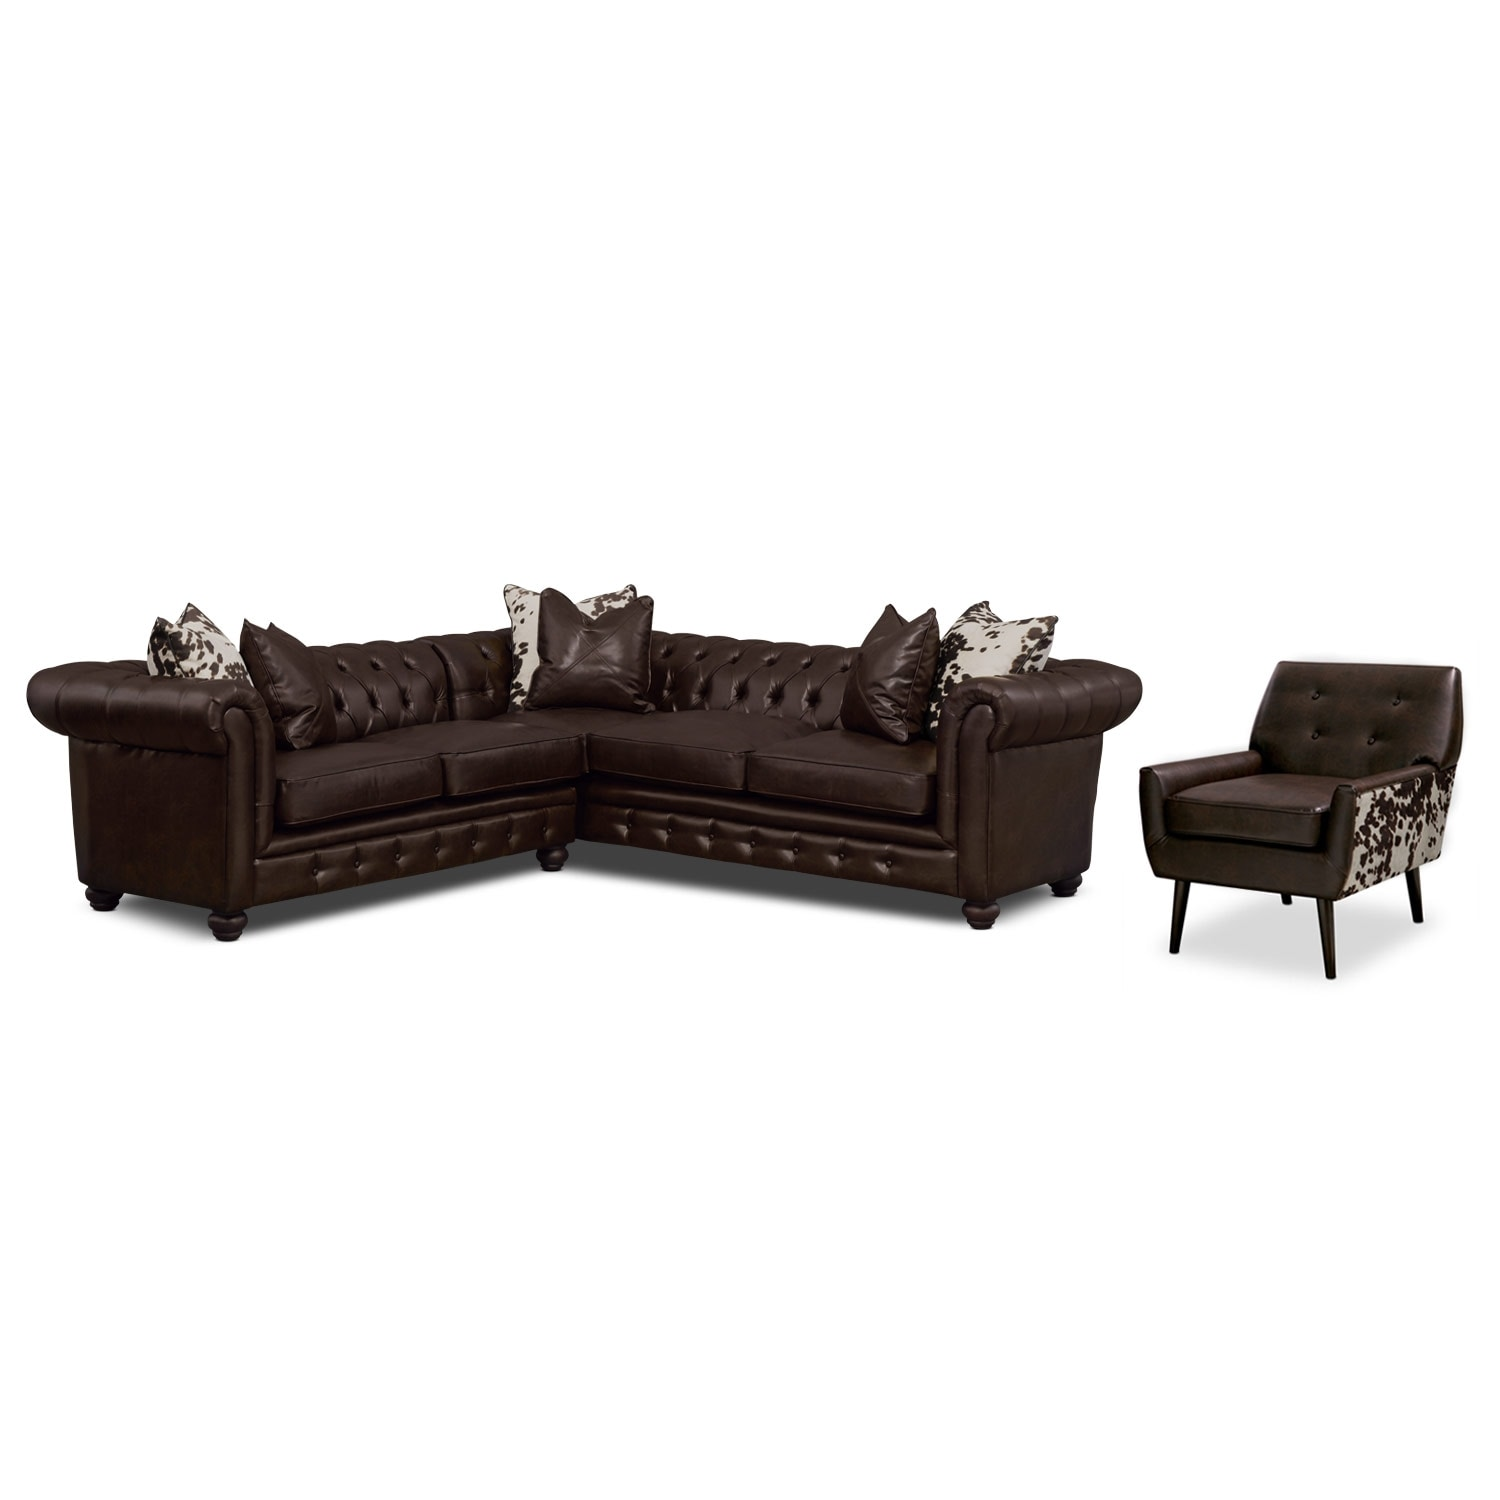 Living Room Furniture - Madeline 2-Piece Sectional and Accent Chair - Chocolate